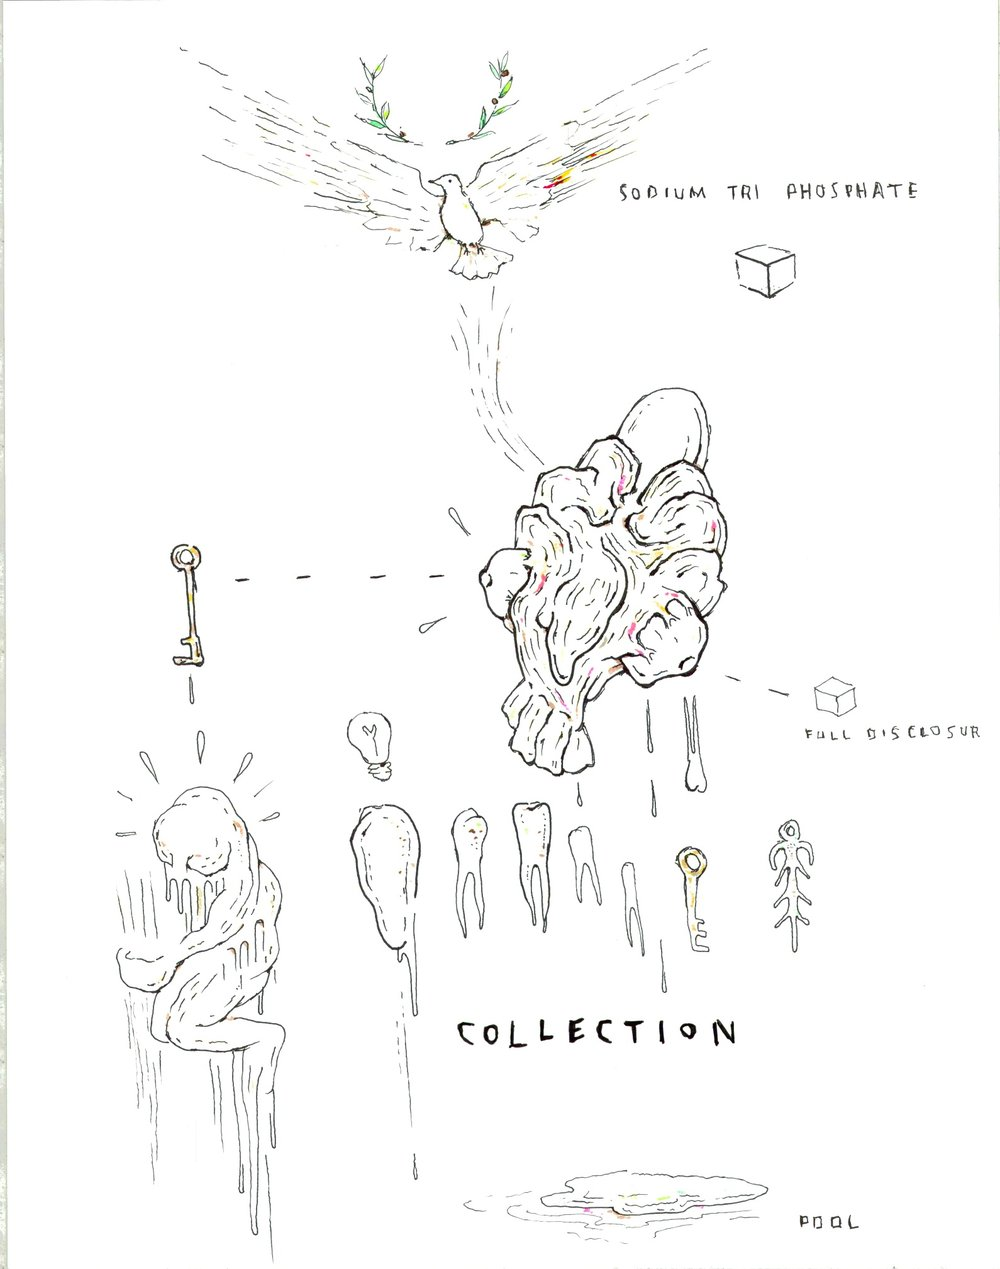 Collection-11x14-Ink-on-Paper-$300--001.jpg